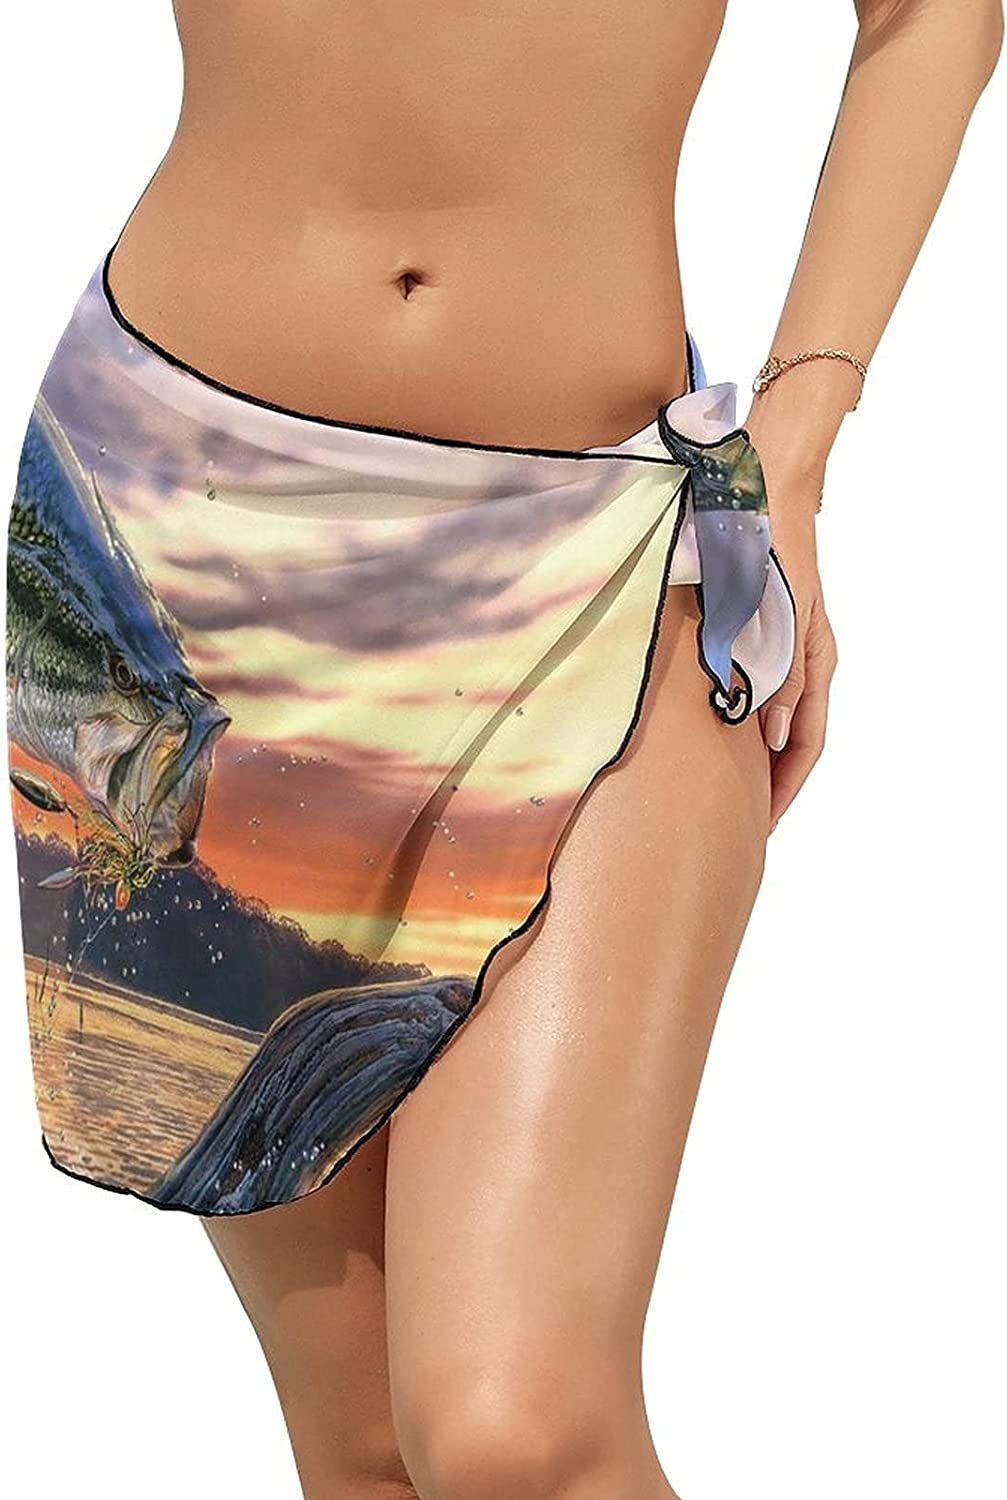 Women's Bikini Swimsuit Cover Up Bass Fish Jumping Out of The Sea Summer Beach Wrap Skirt Pareo Sarong